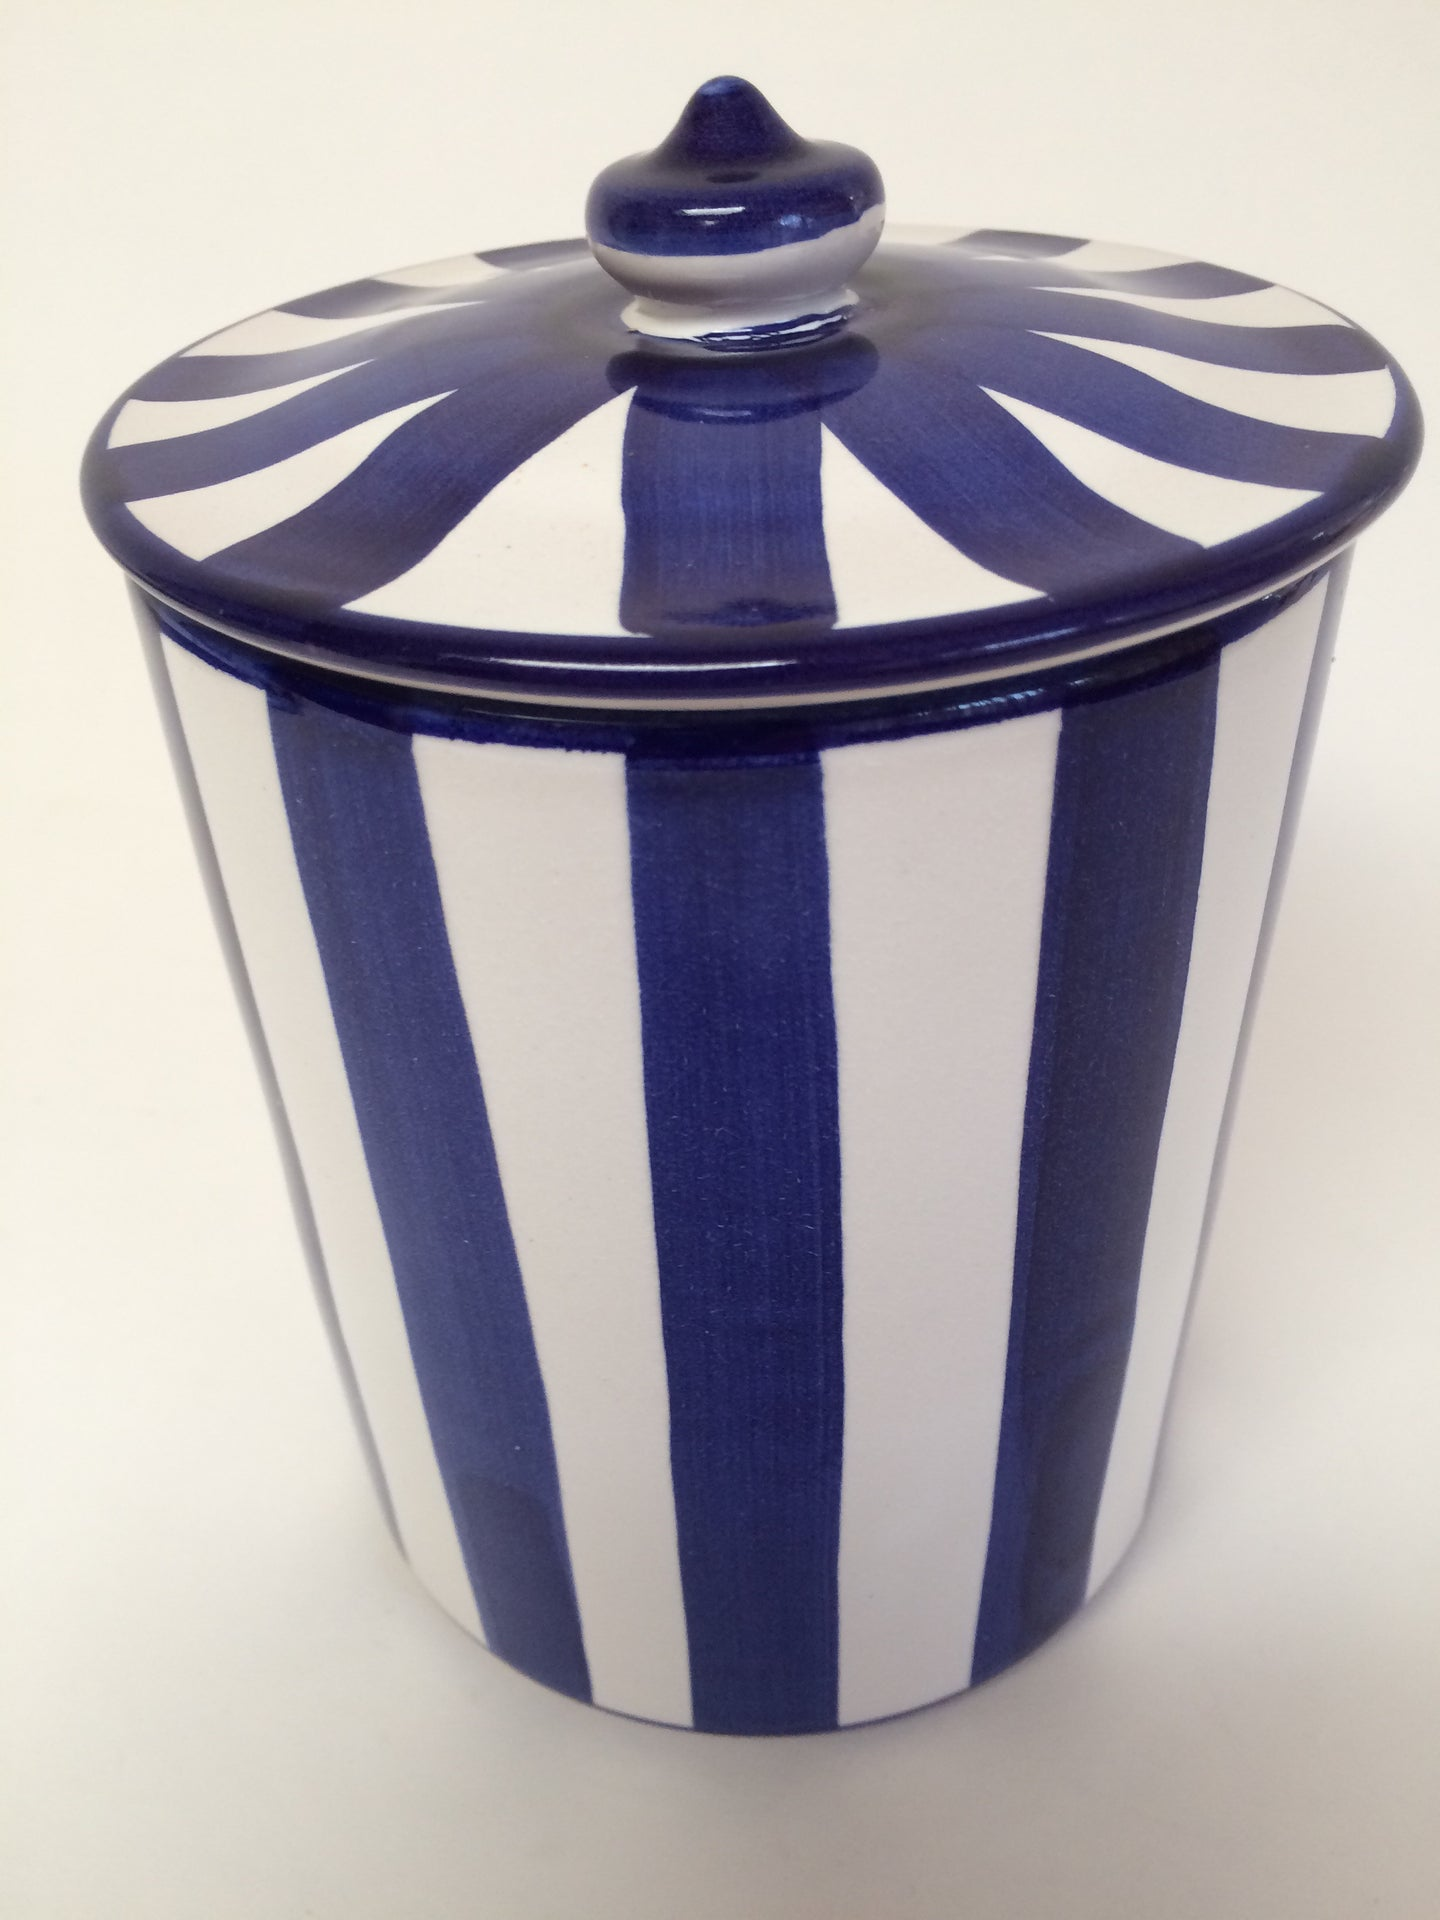 Lidded Blue and White Ceramic Canister Stash Jar Made in Italy for Vietri